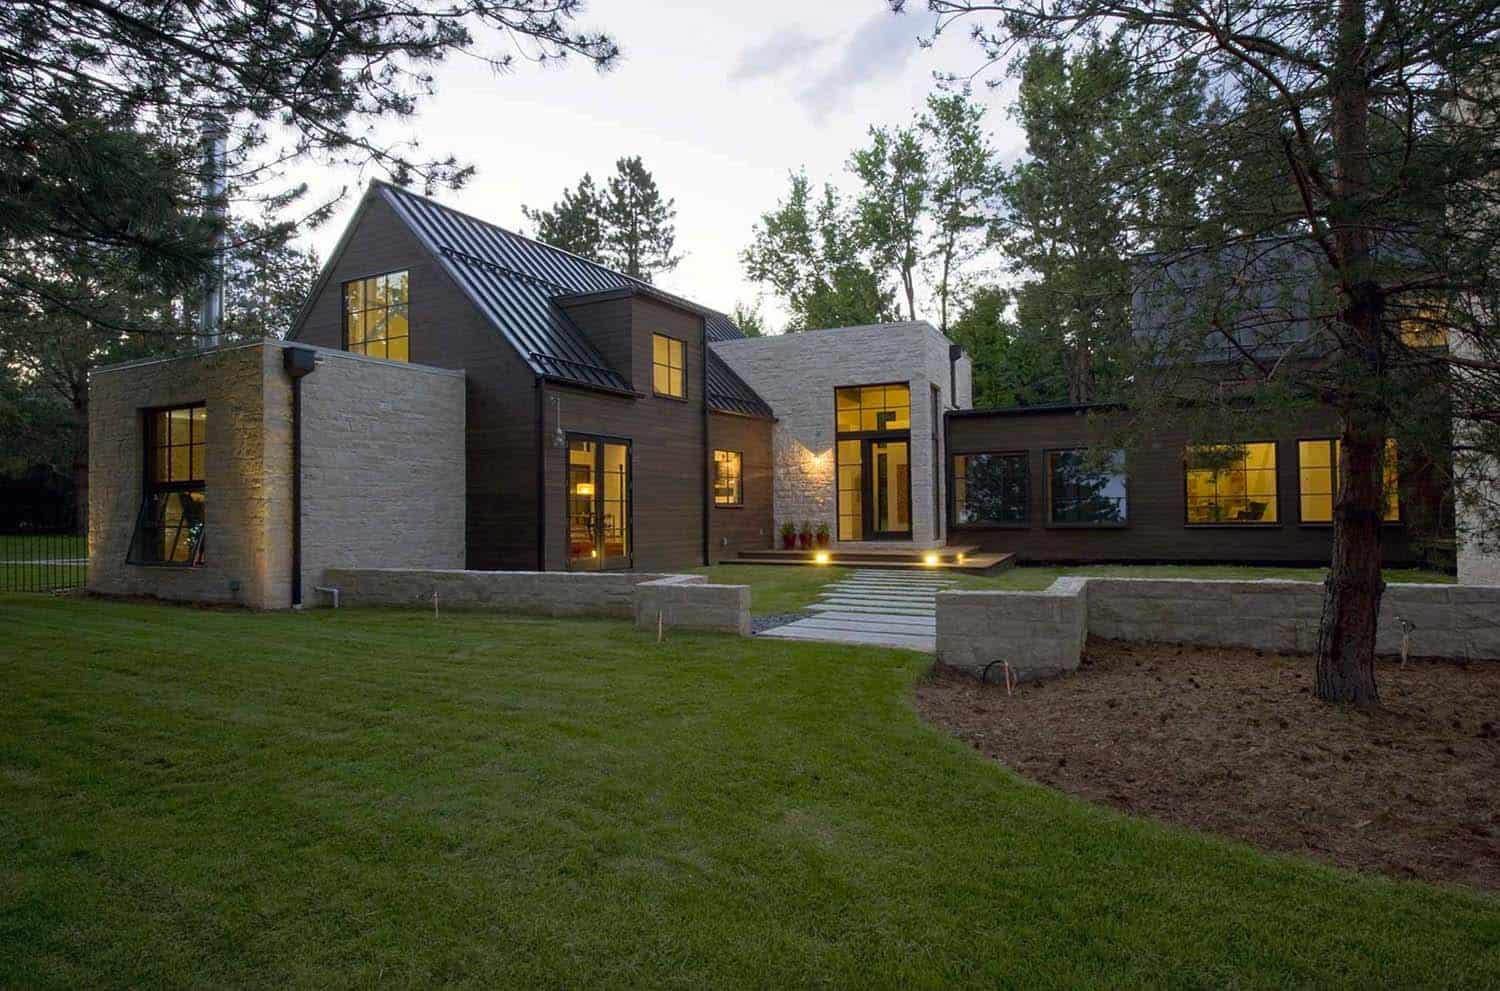 Breathtaking colorado home with contemporary farmhouse style details